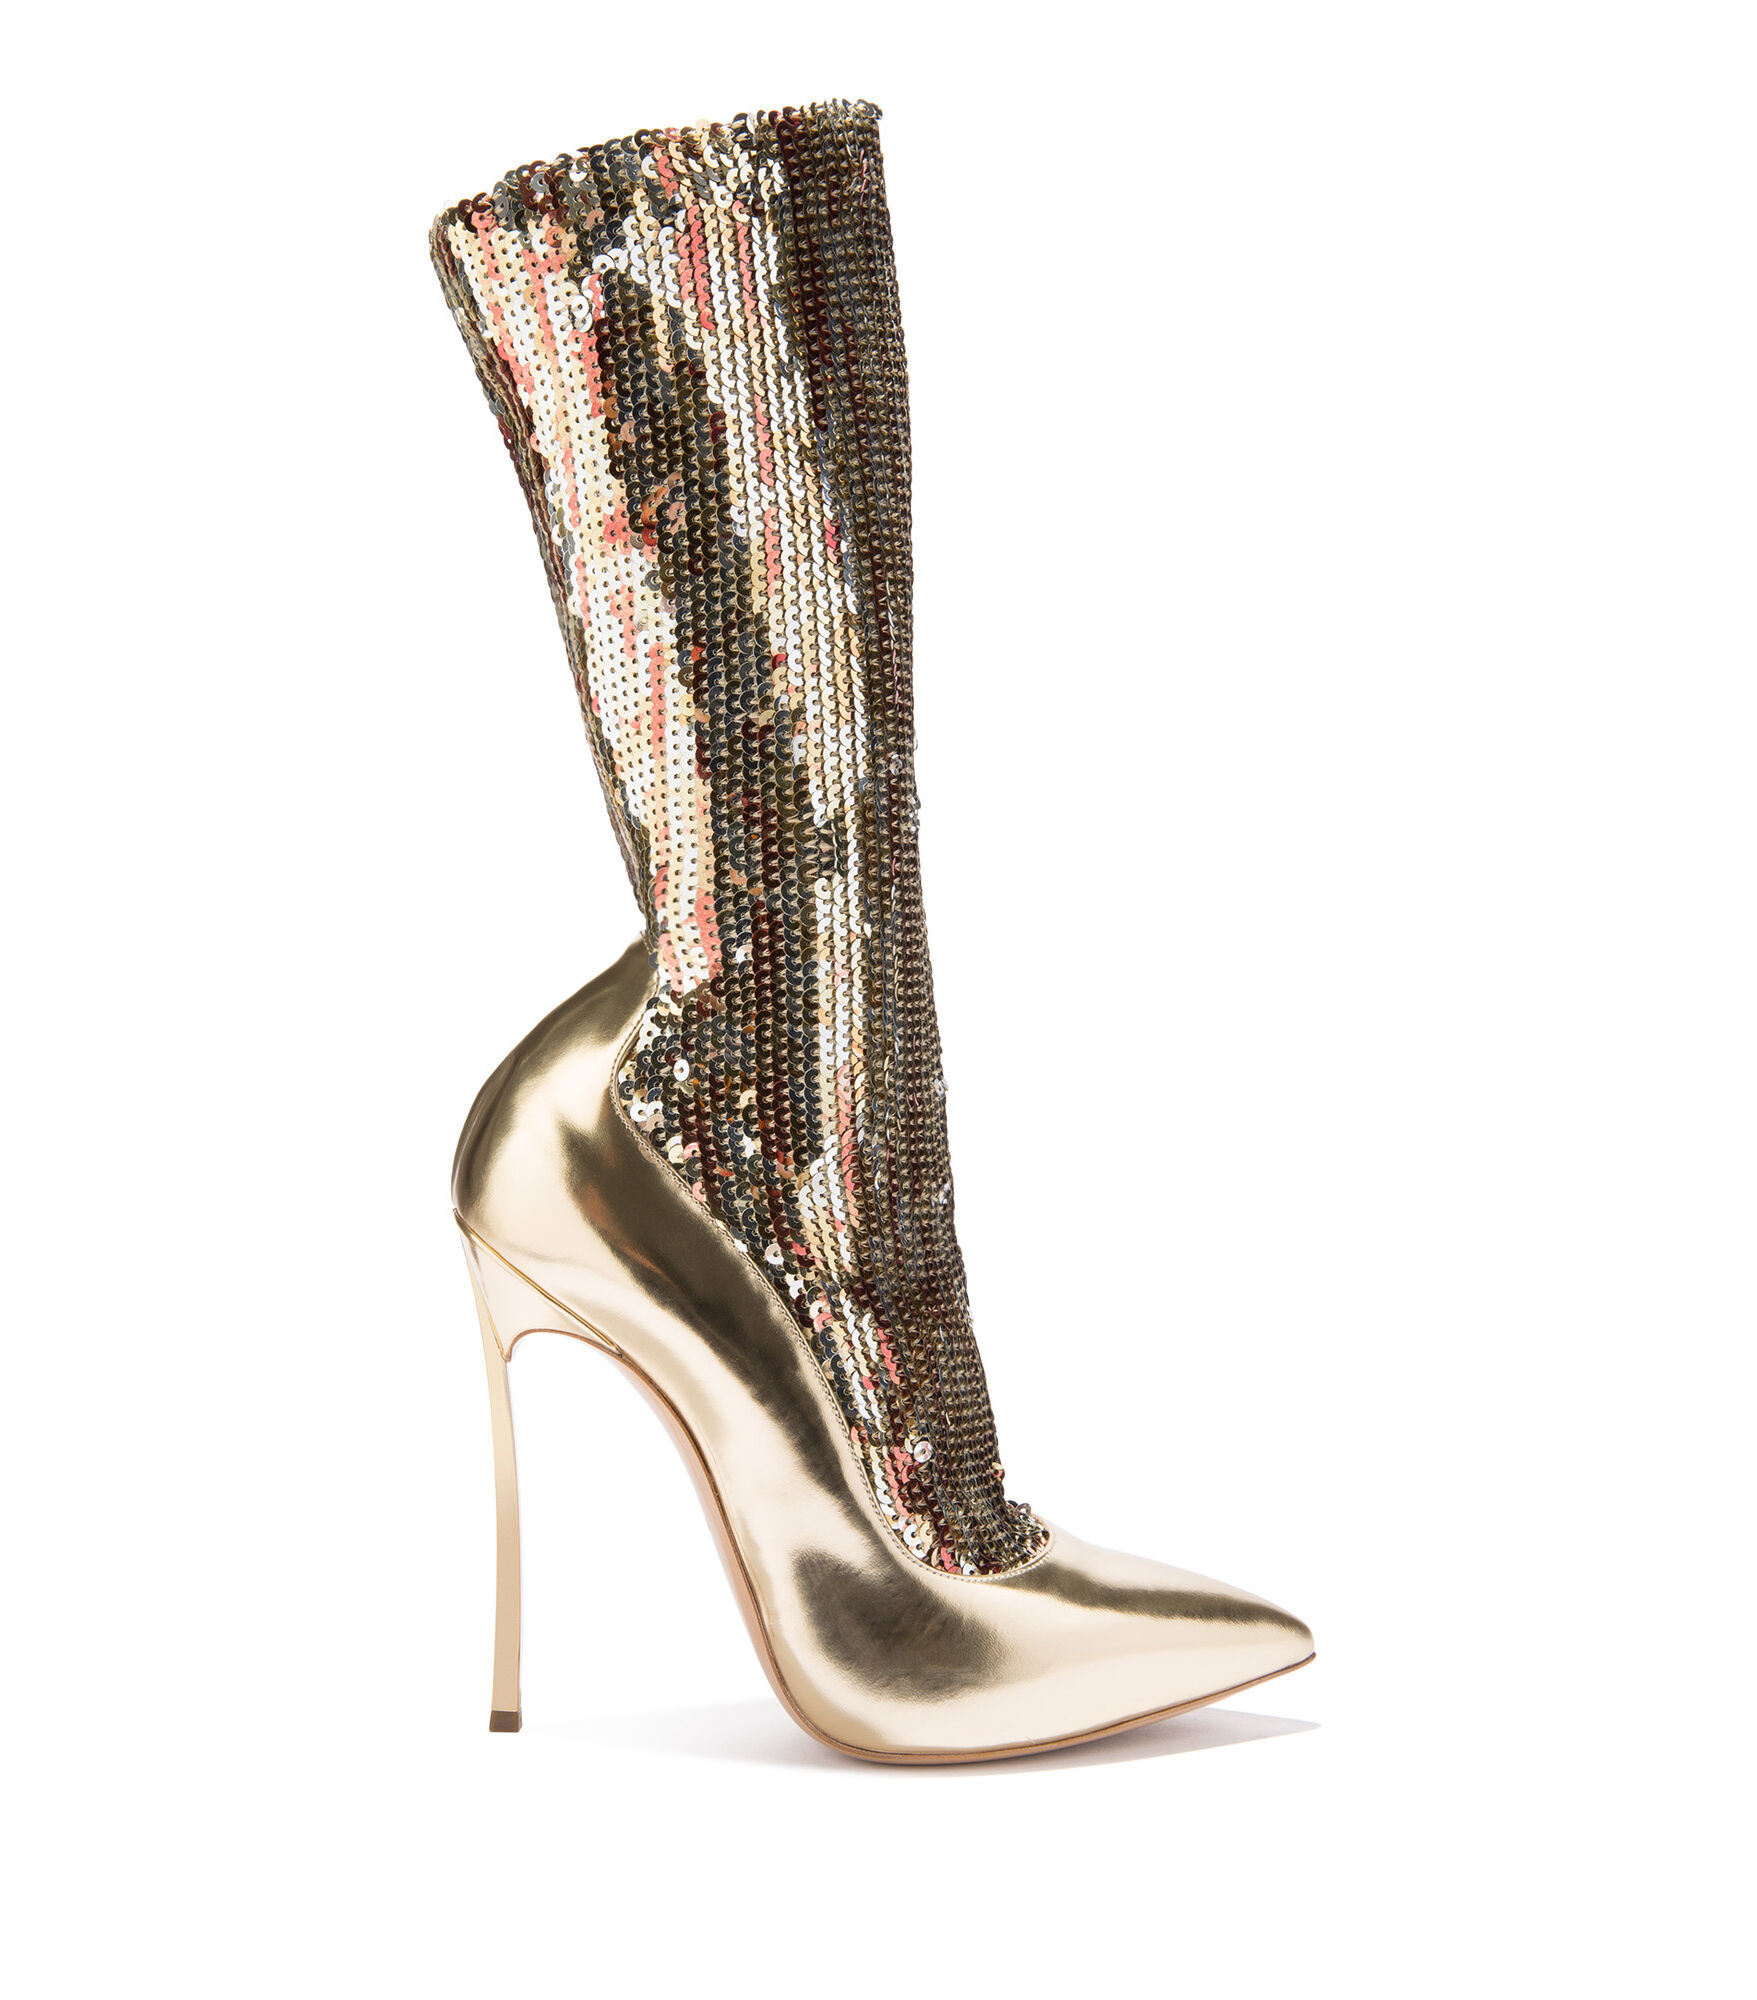 Casadei Ankle Boots - Blade Golden Elasticated socks covered in sequins